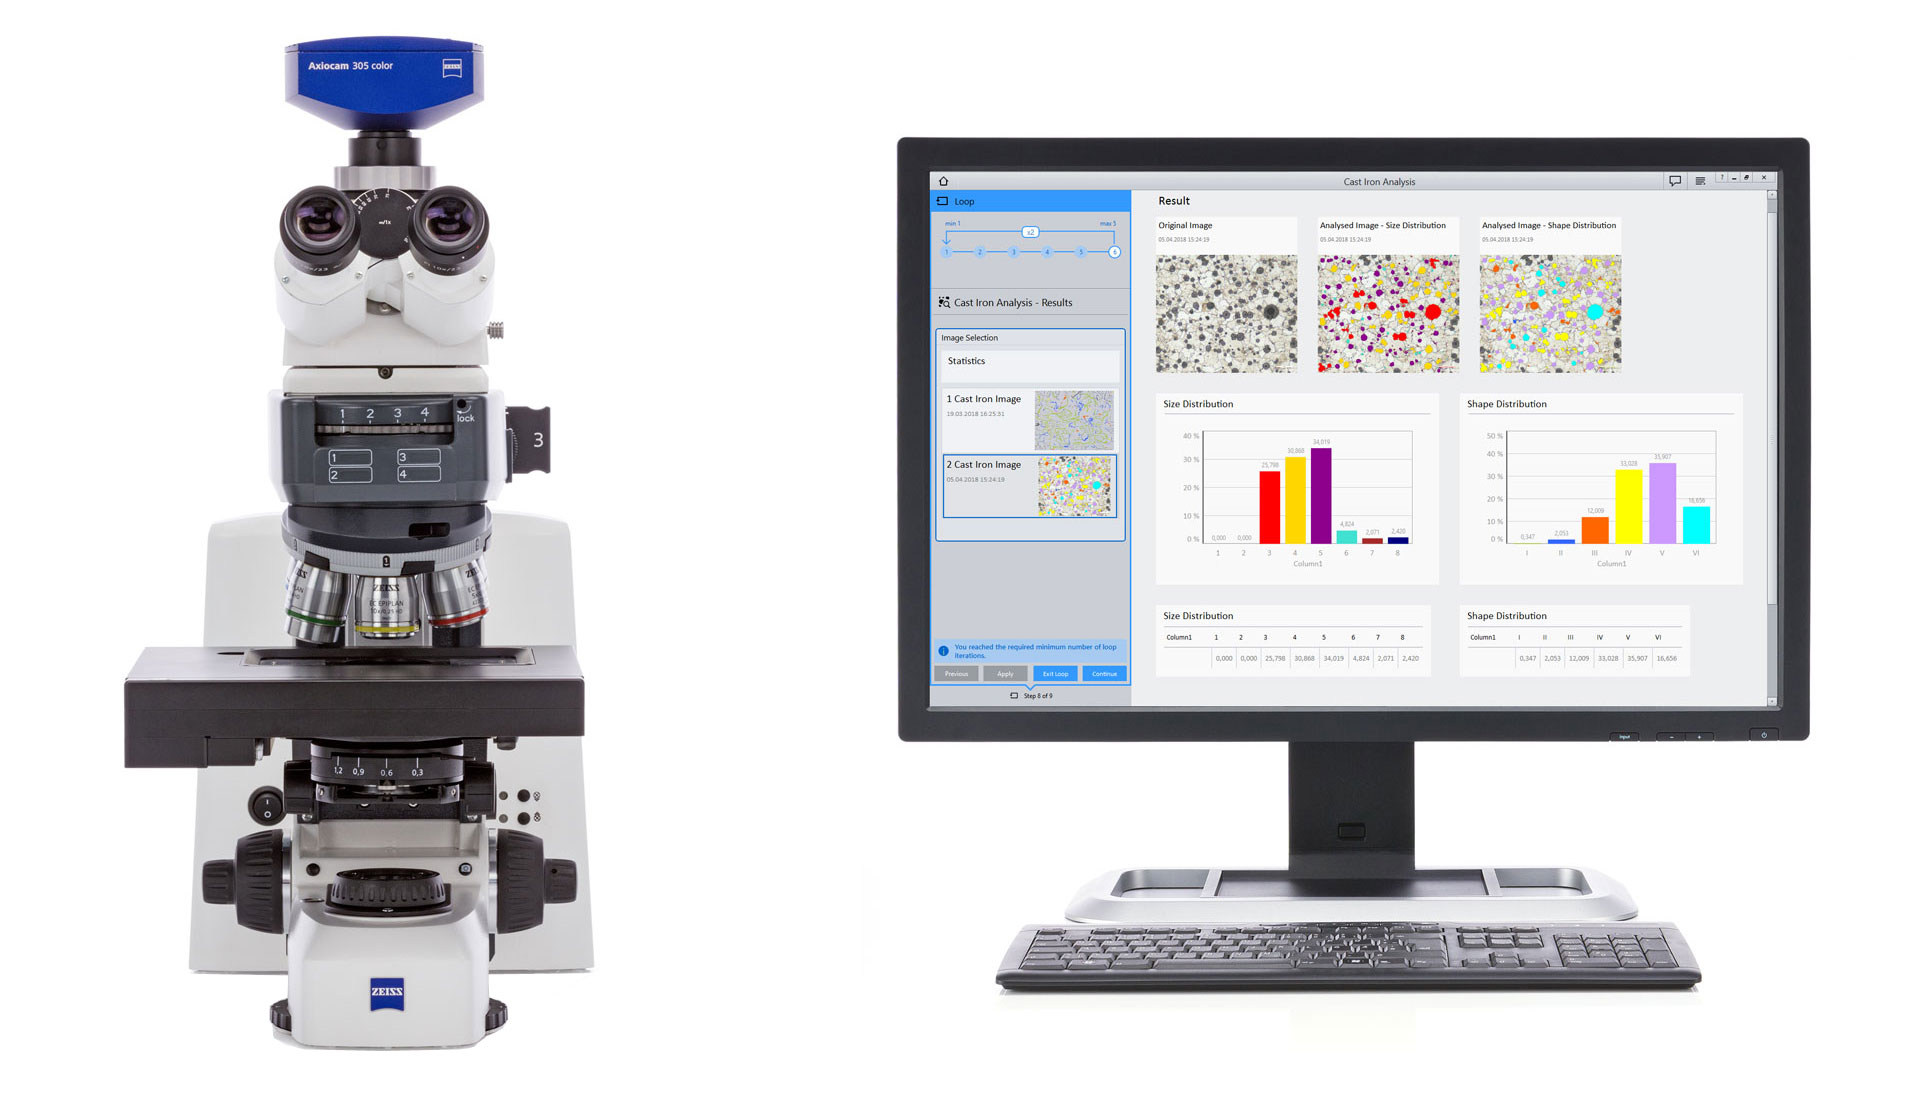 hight resolution of  automation and you also need advanced optical microscopy for materials analysis and metallography being a complete material laboratory solution